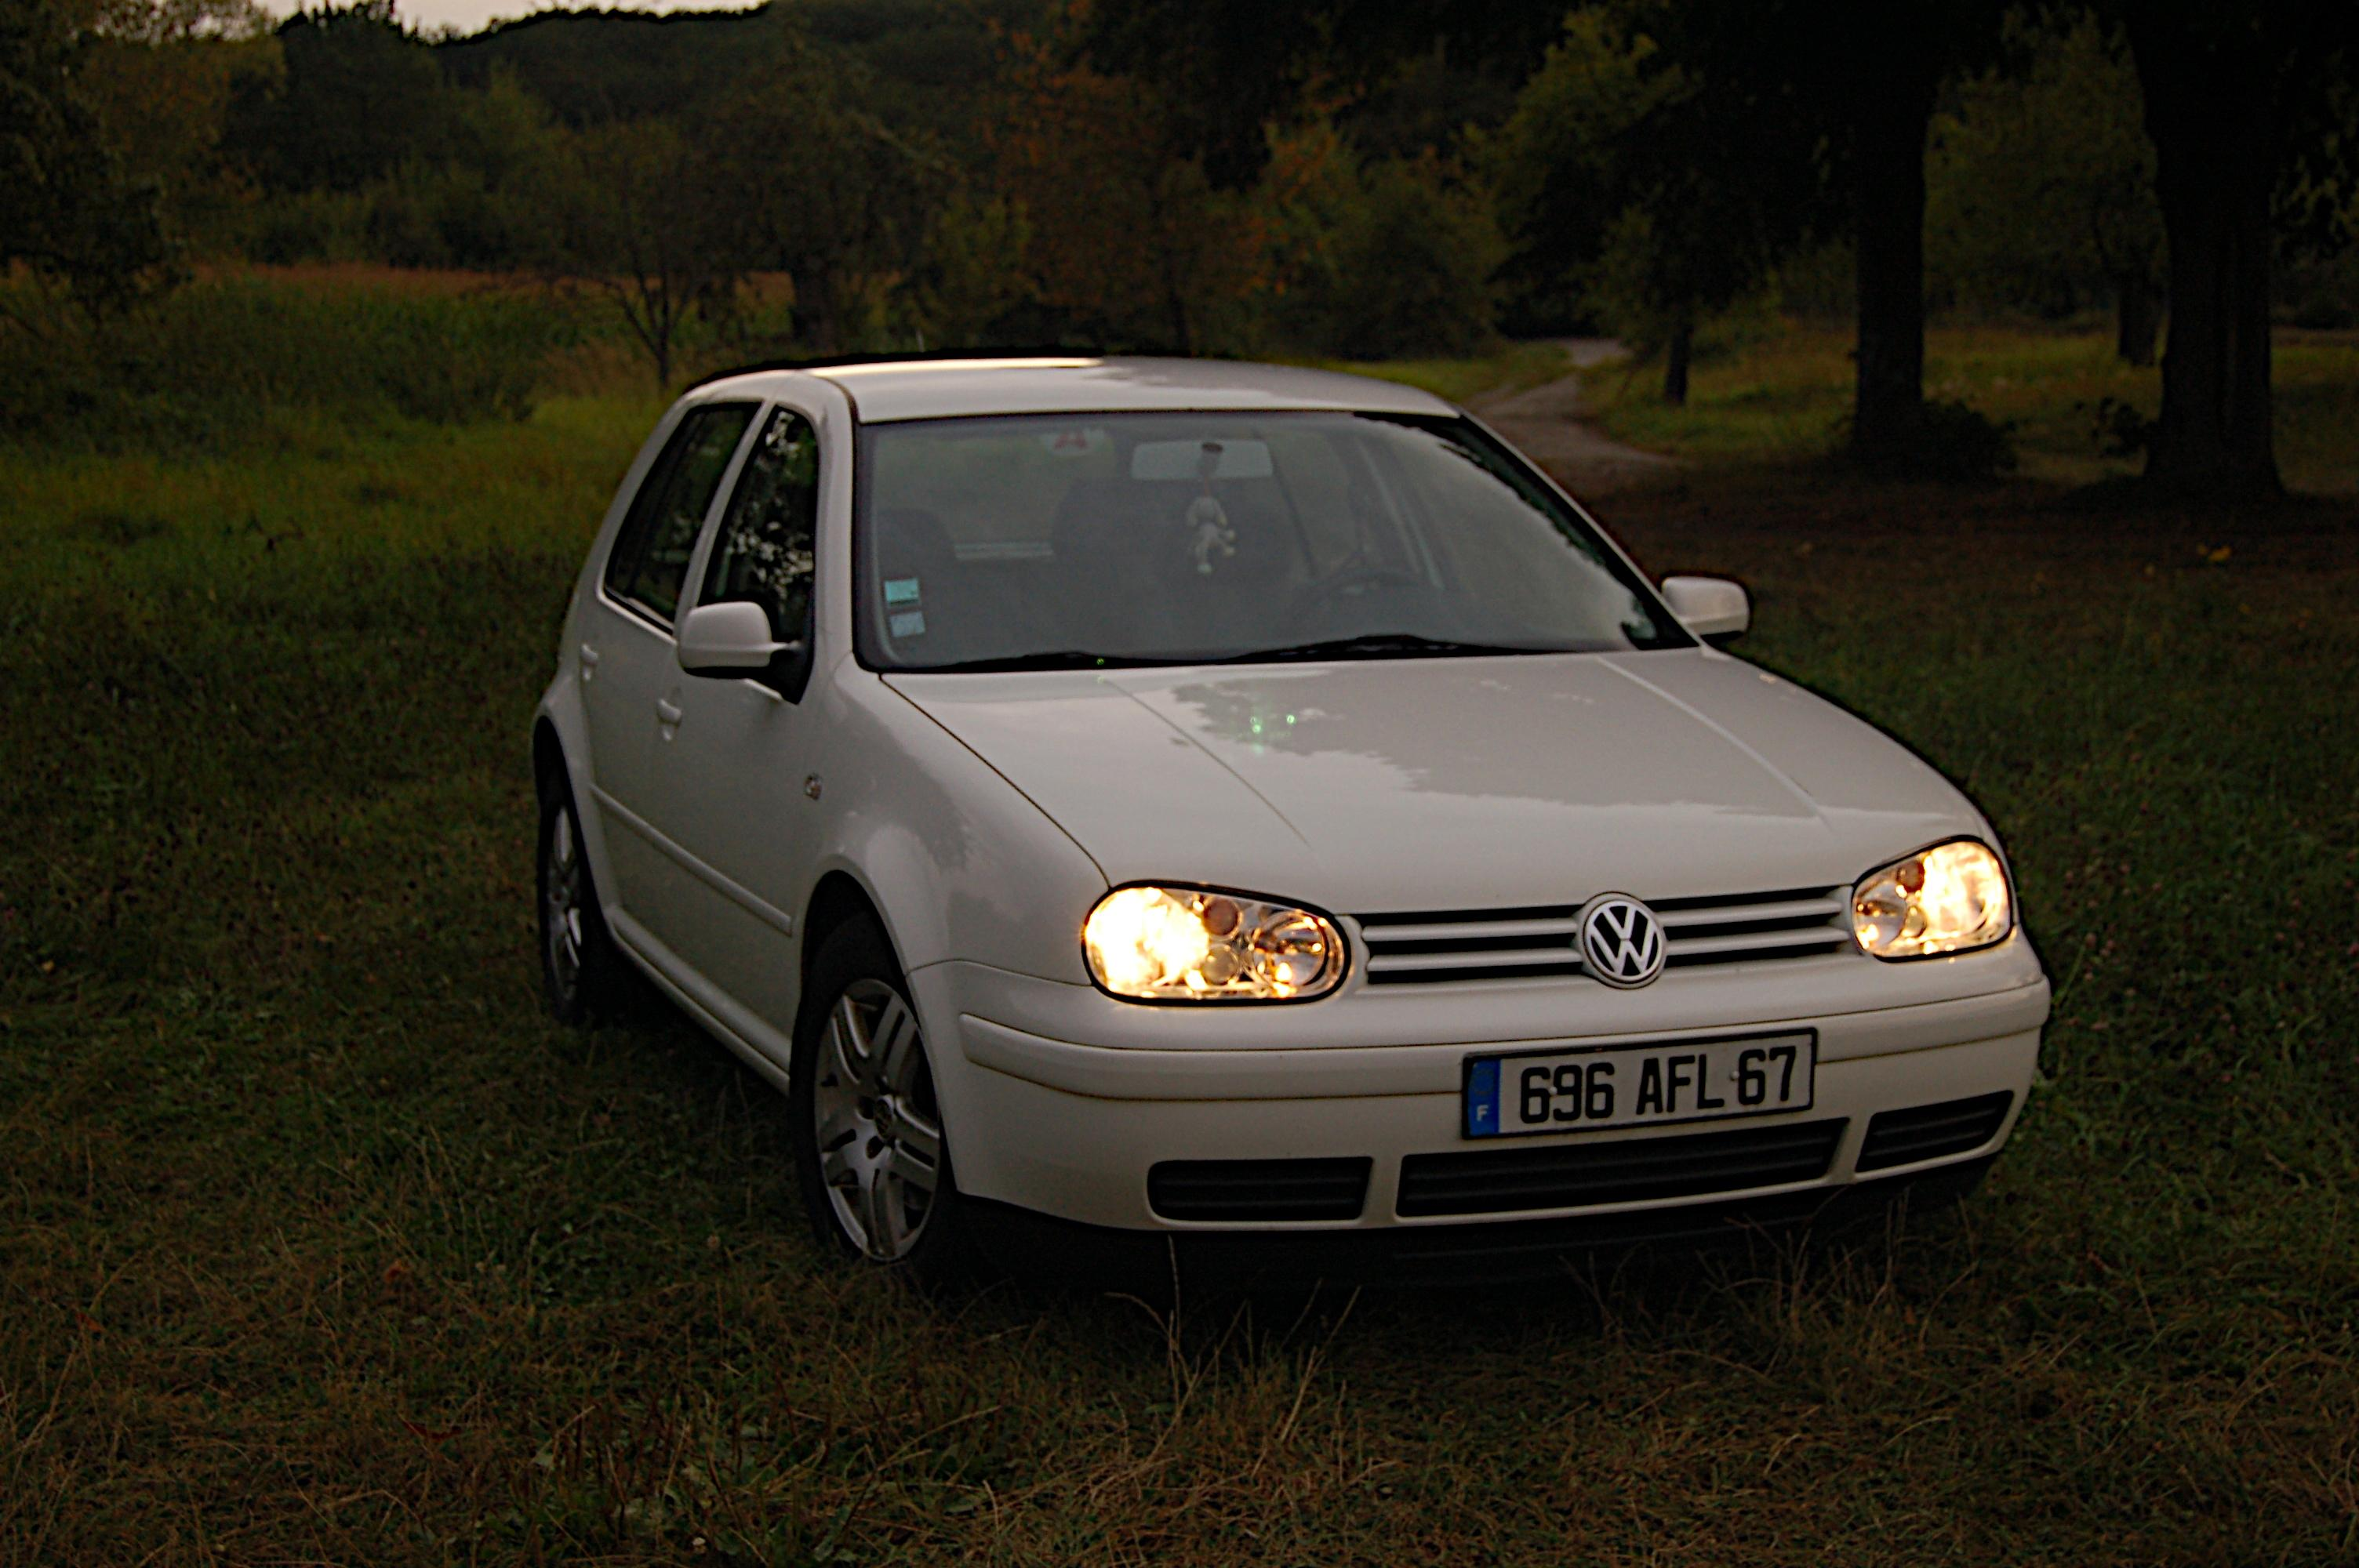 golf iv tdi 115 blanche garage des golf iv tdi 115 forum volkswagen golf iv. Black Bedroom Furniture Sets. Home Design Ideas